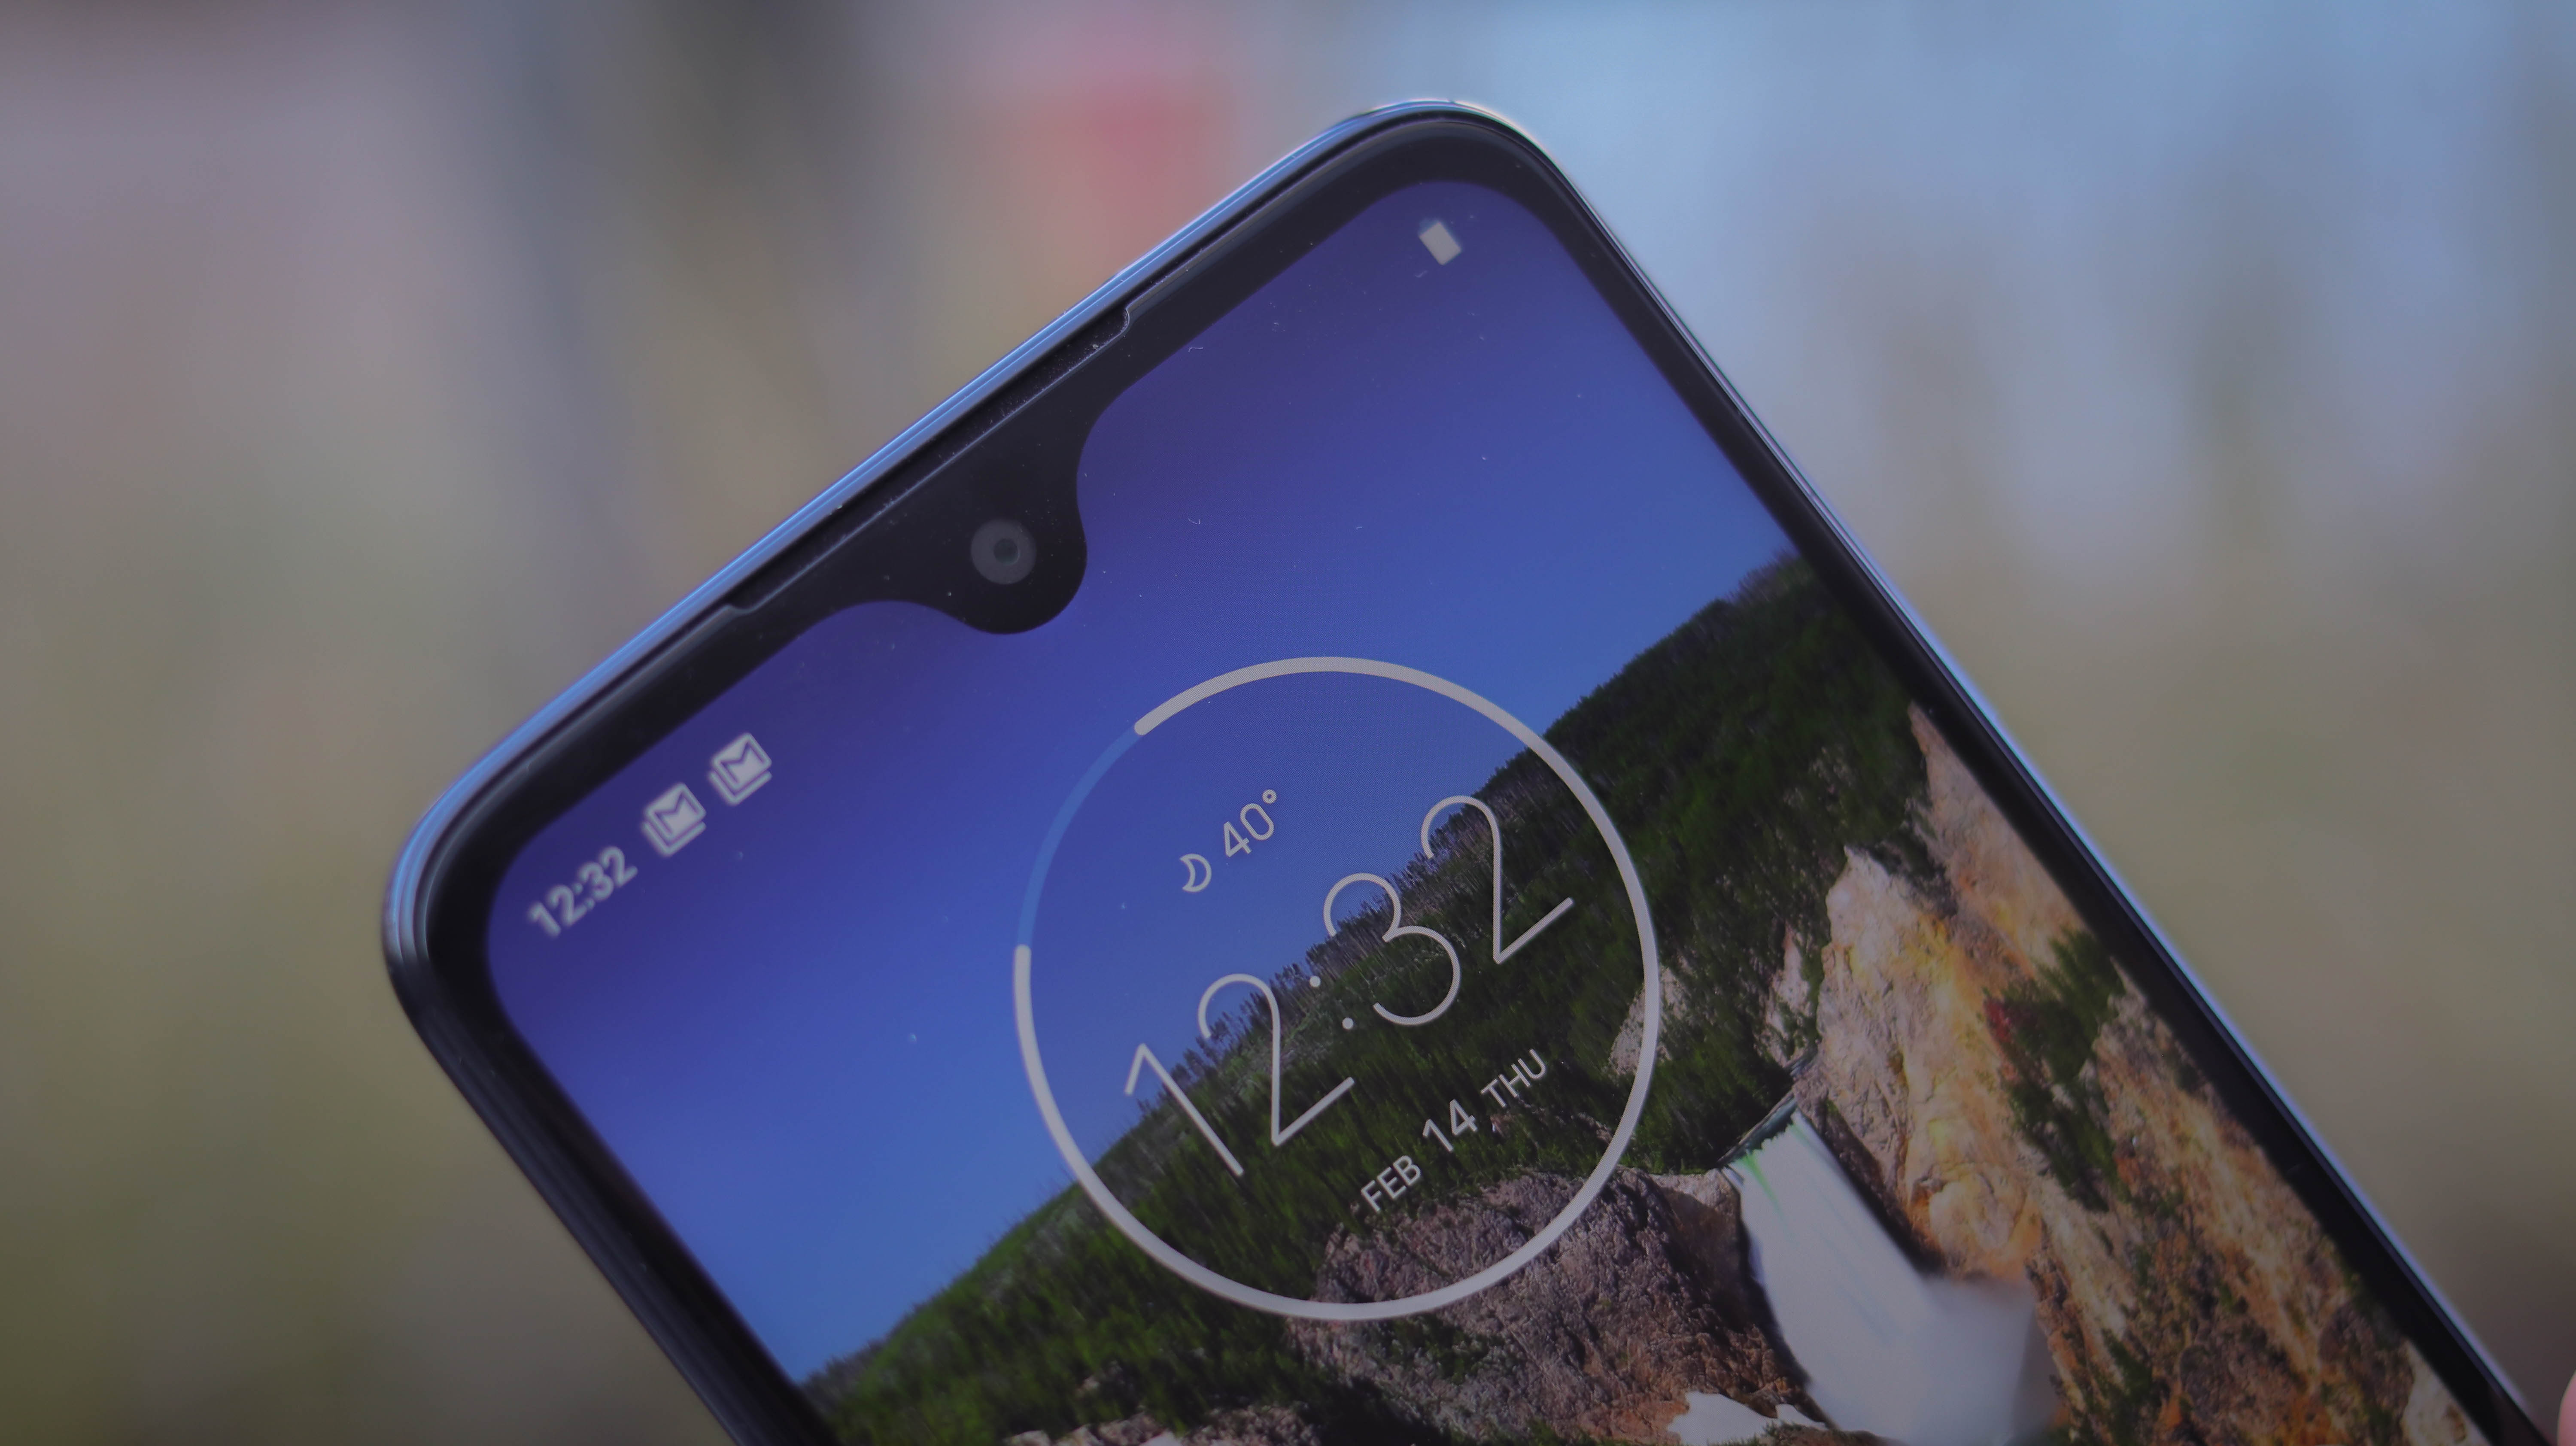 Moto Z4 release date, price, news and rumors